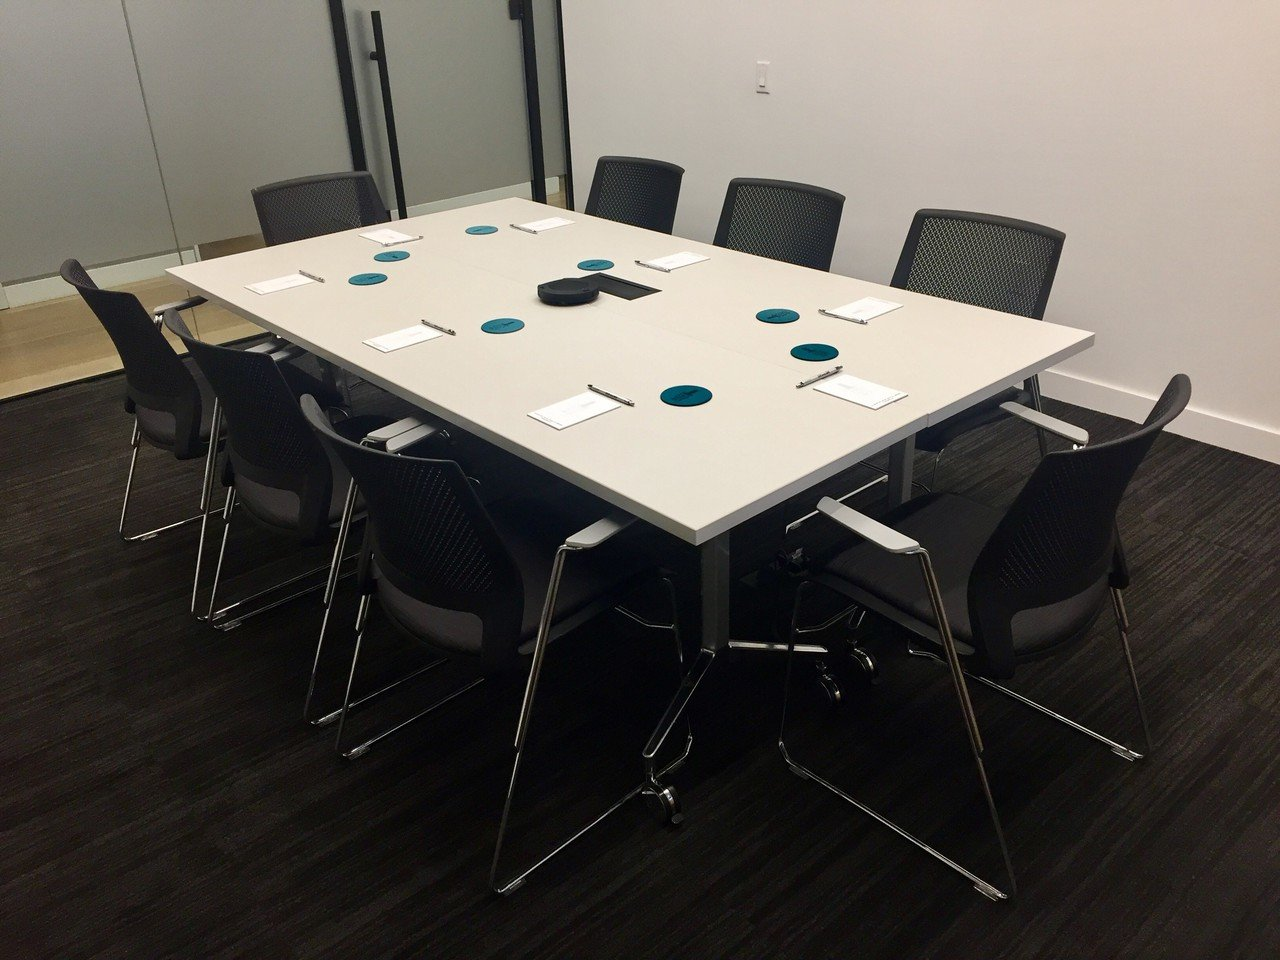 NYC  Meeting room 110west40 Conference Room D image 2